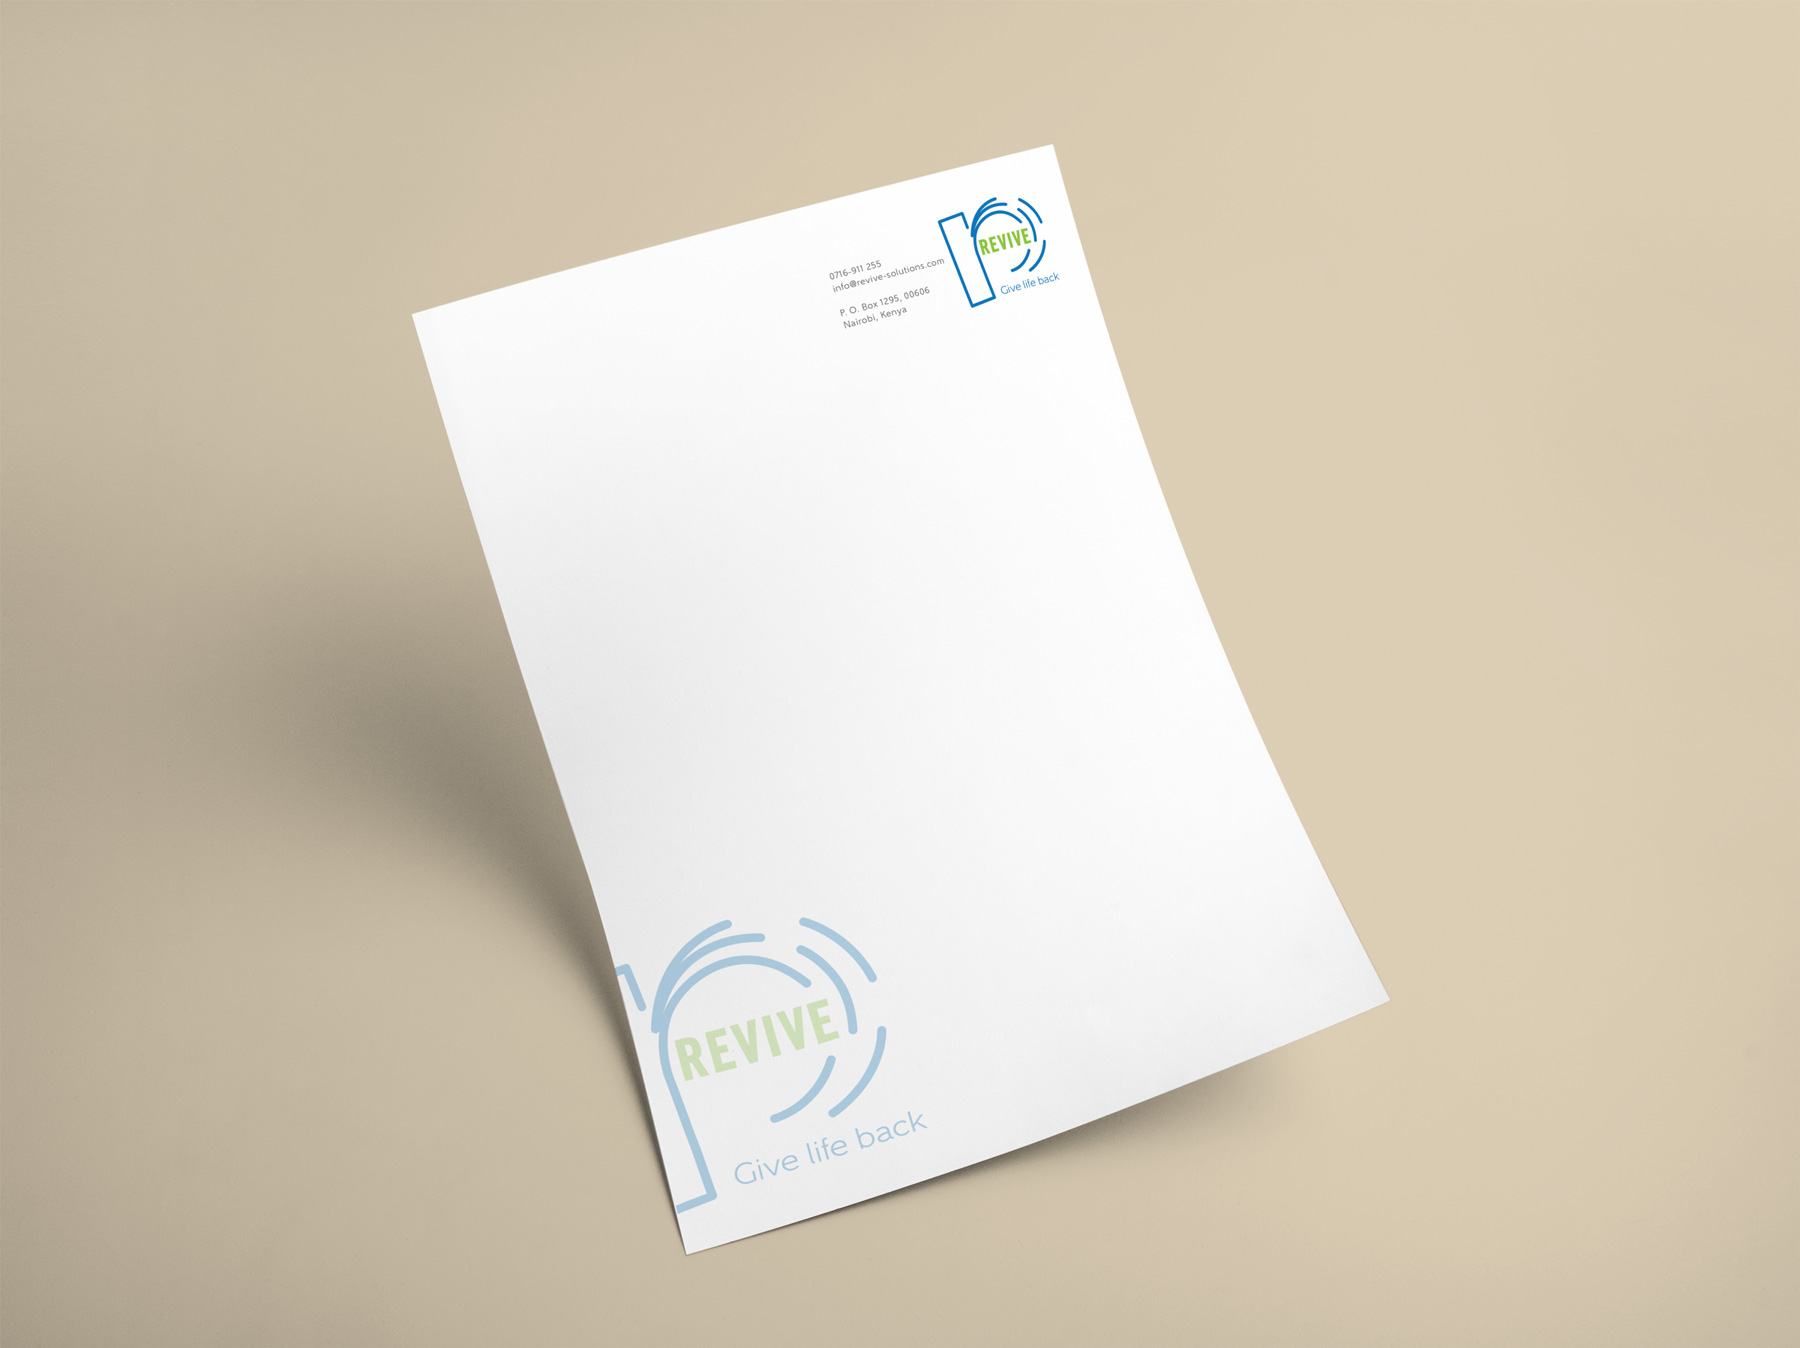 Revive letterhead